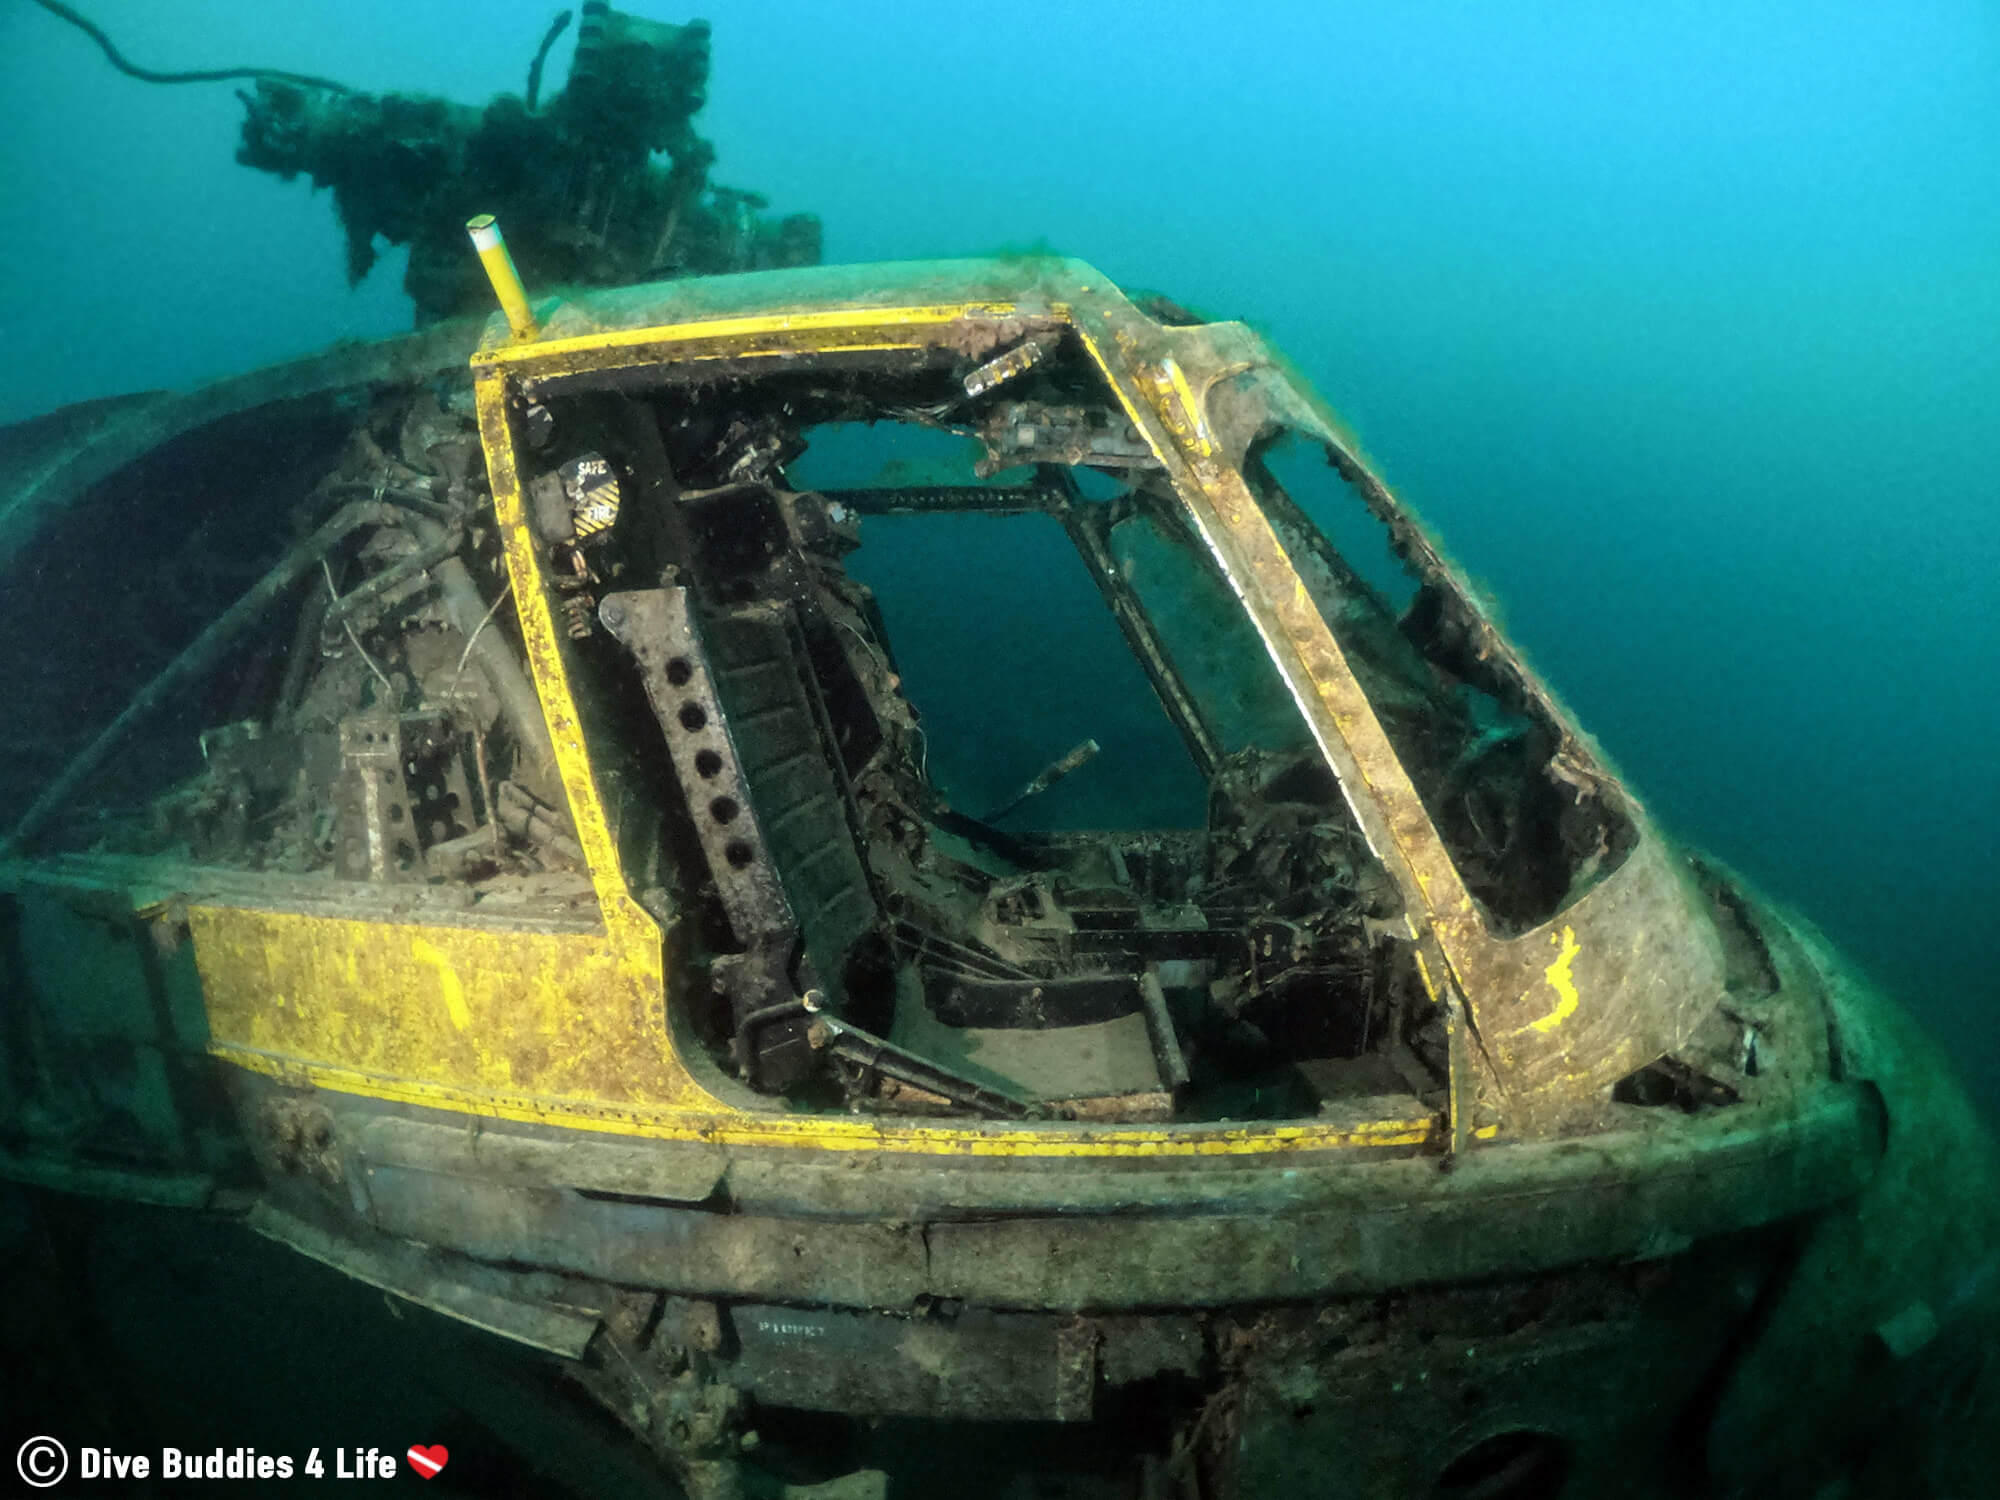 Scuba Diving The Inside Of A Sunken Helicopter In Chepstow, Wales, UK